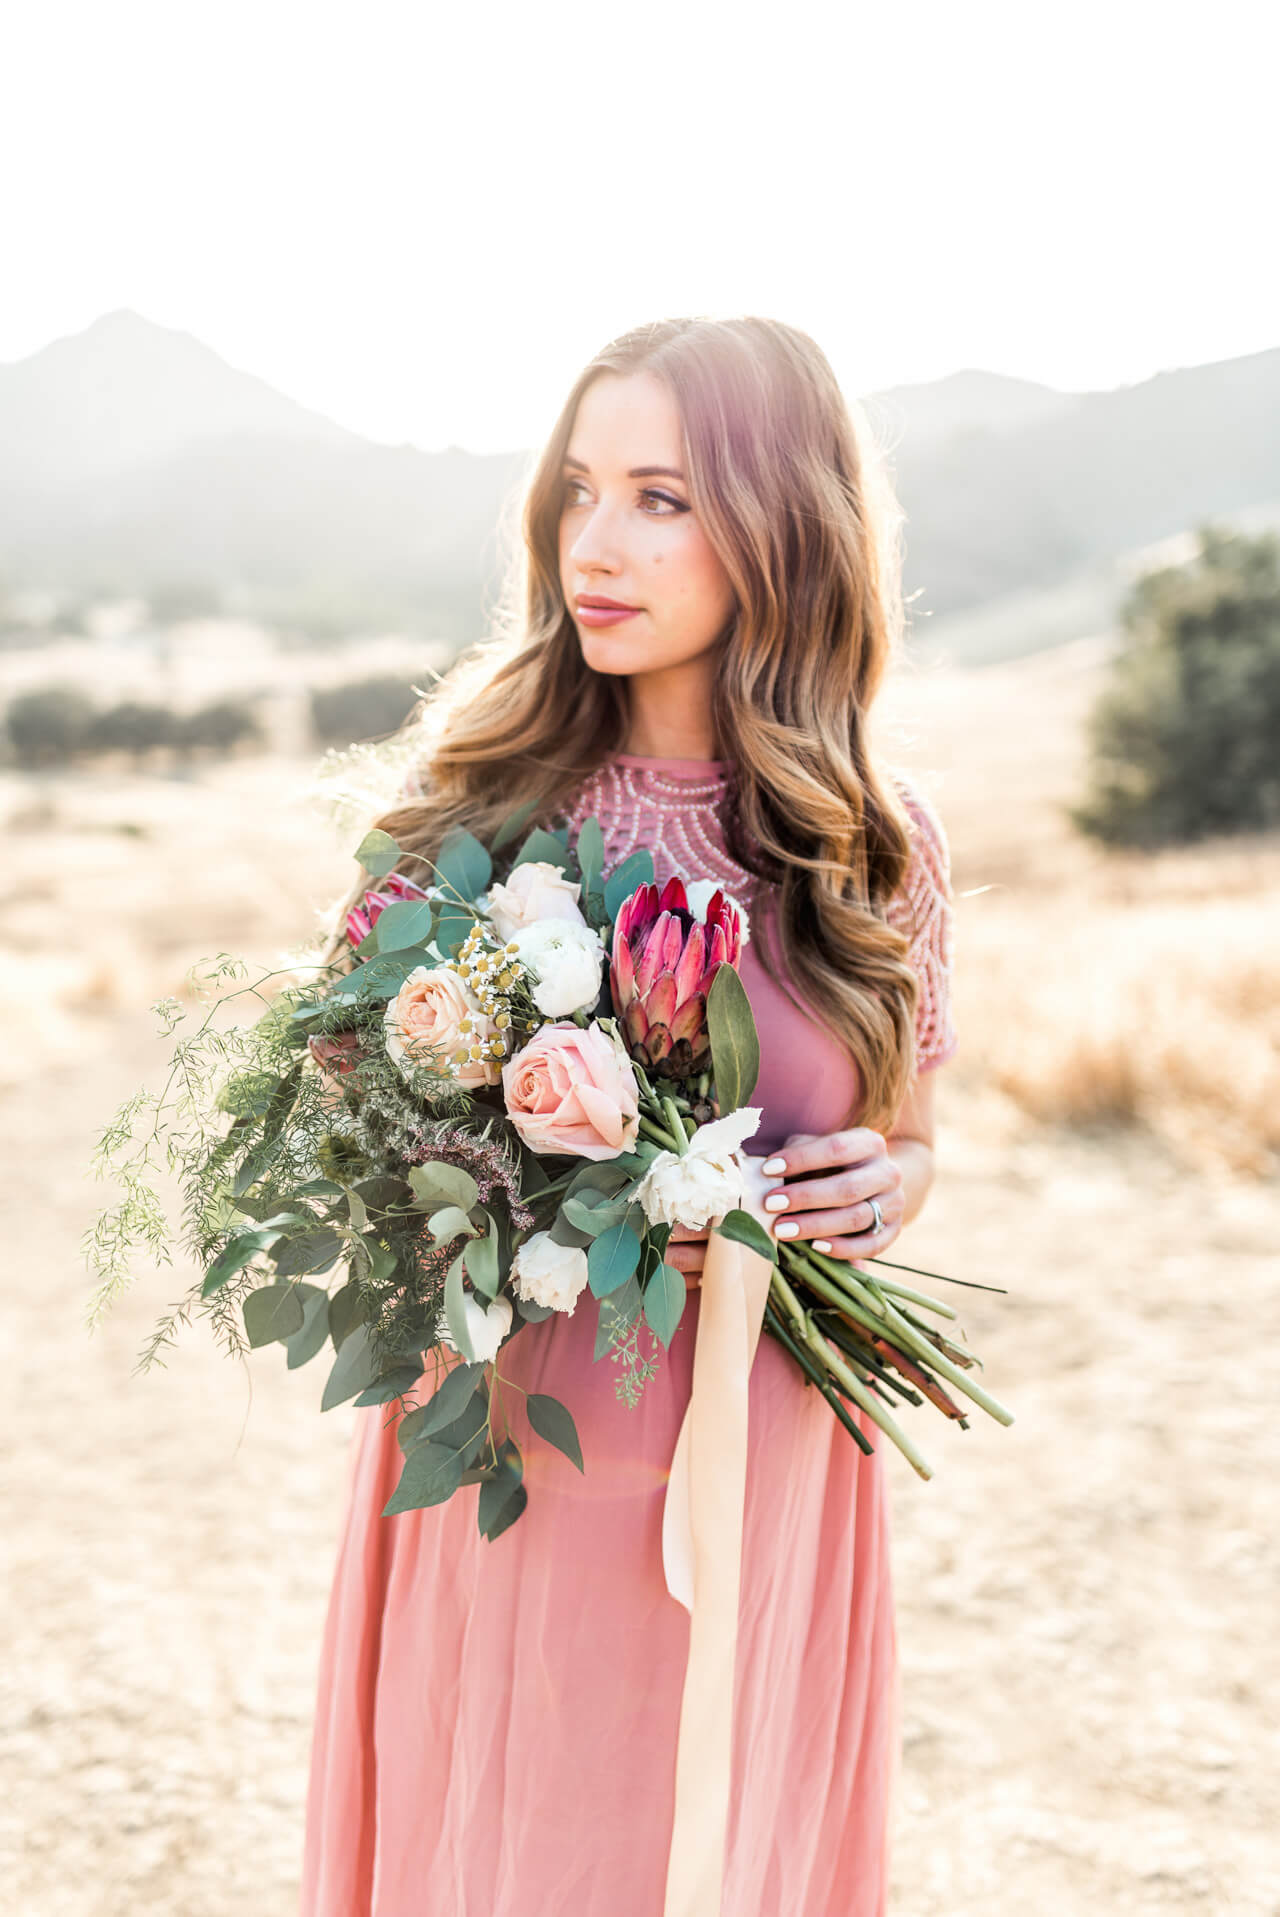 Mara Ferreira of M Loves M maternity shoot with gorgeous pink and green floral bouquet